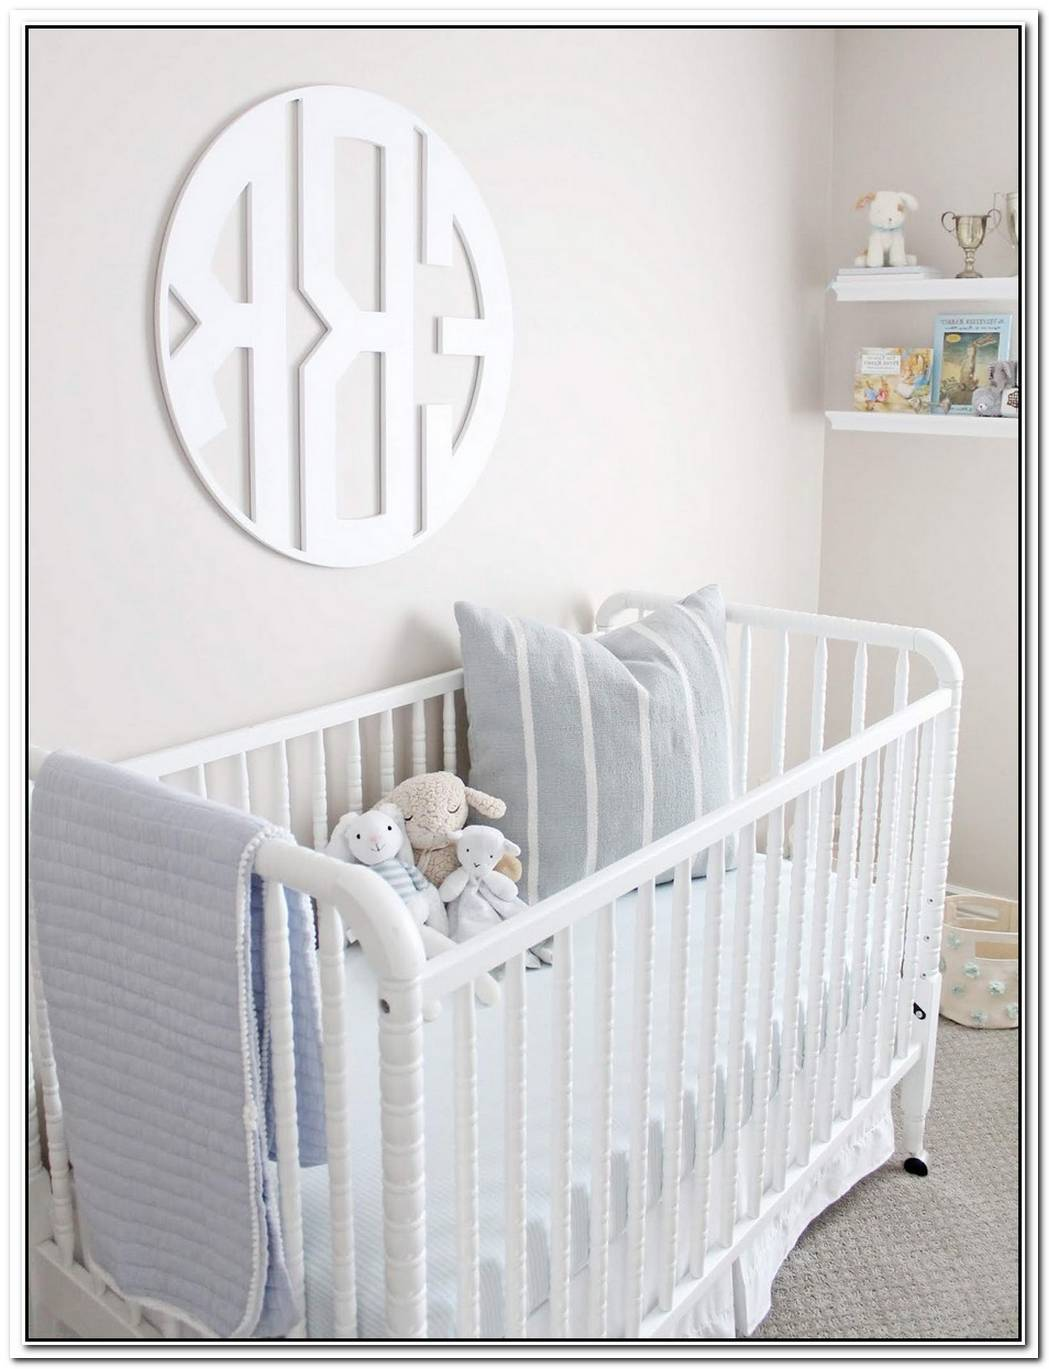 10 Great Crib Ideas From Classic To Whimsical